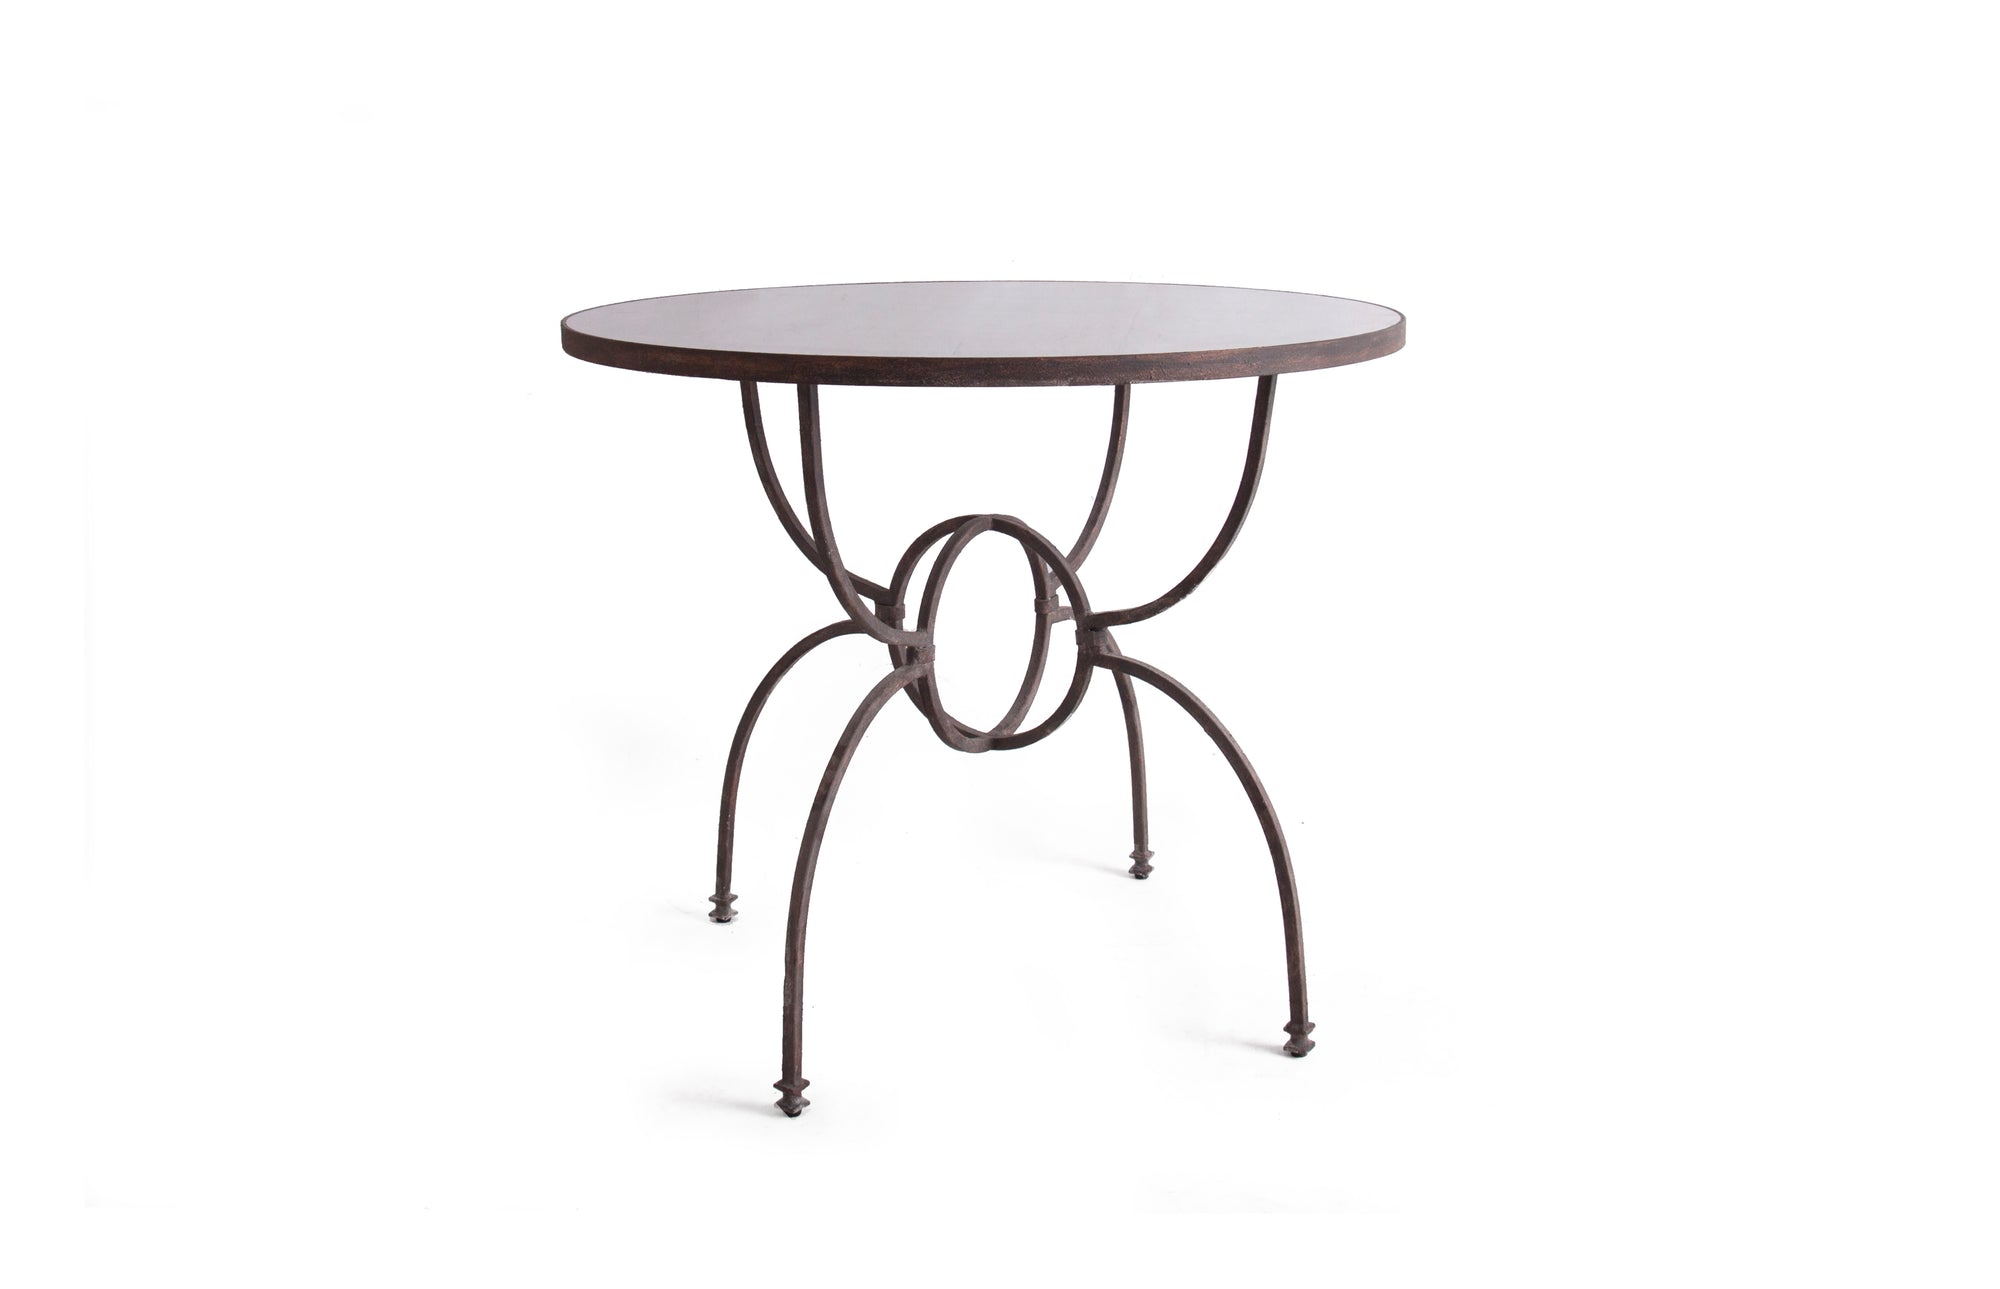 Orb Iron Base Table with Mirrored Top